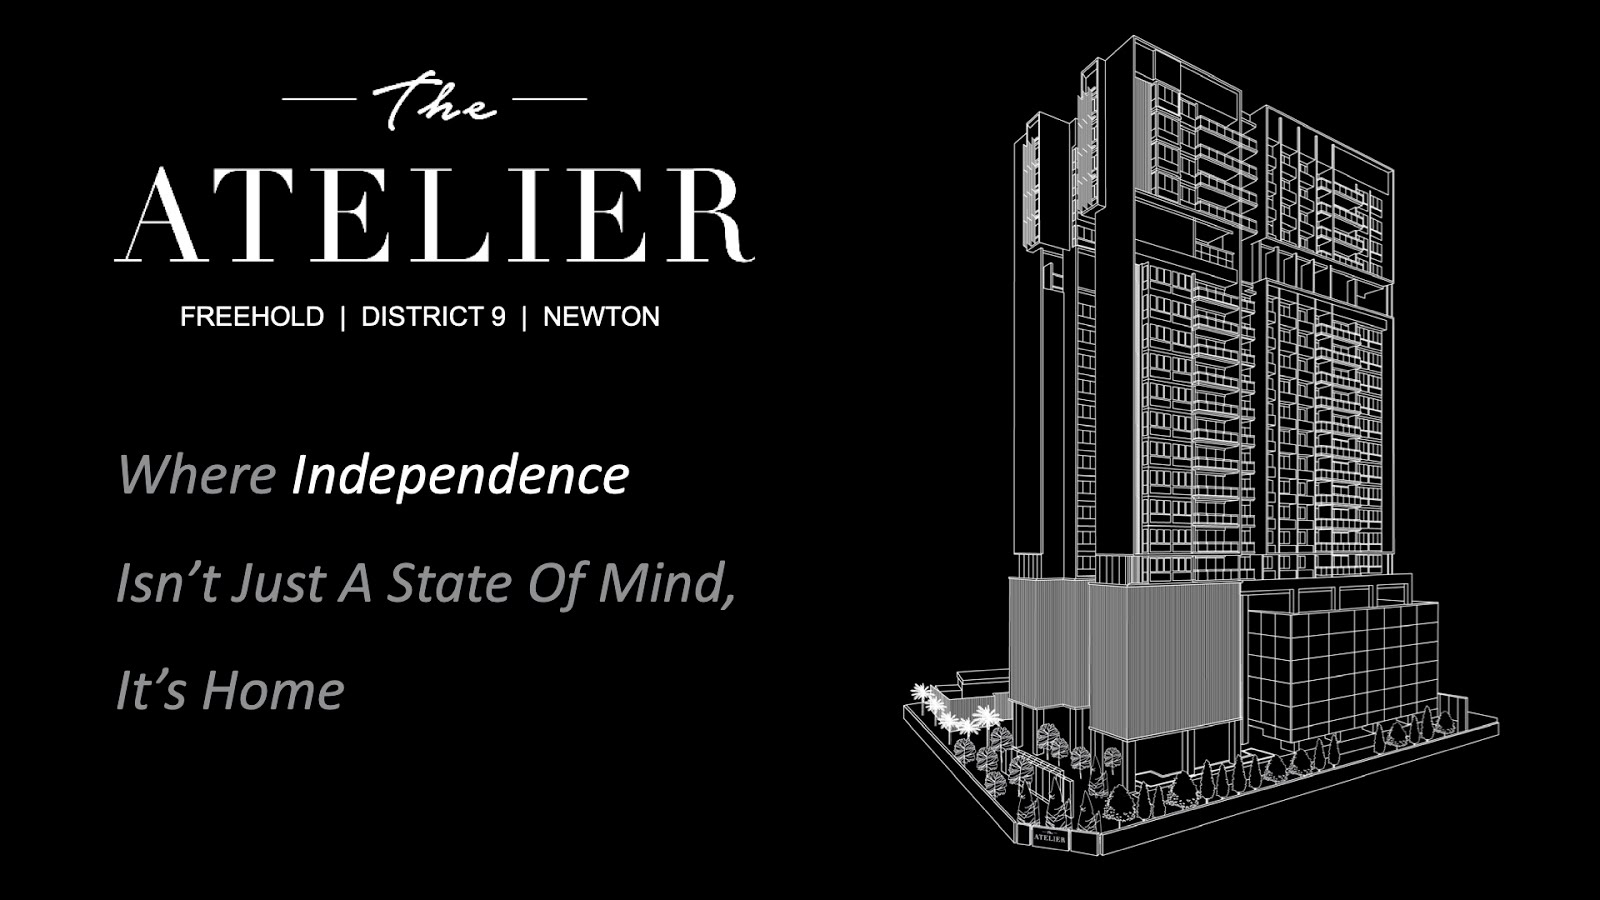 The Atelier for sale!